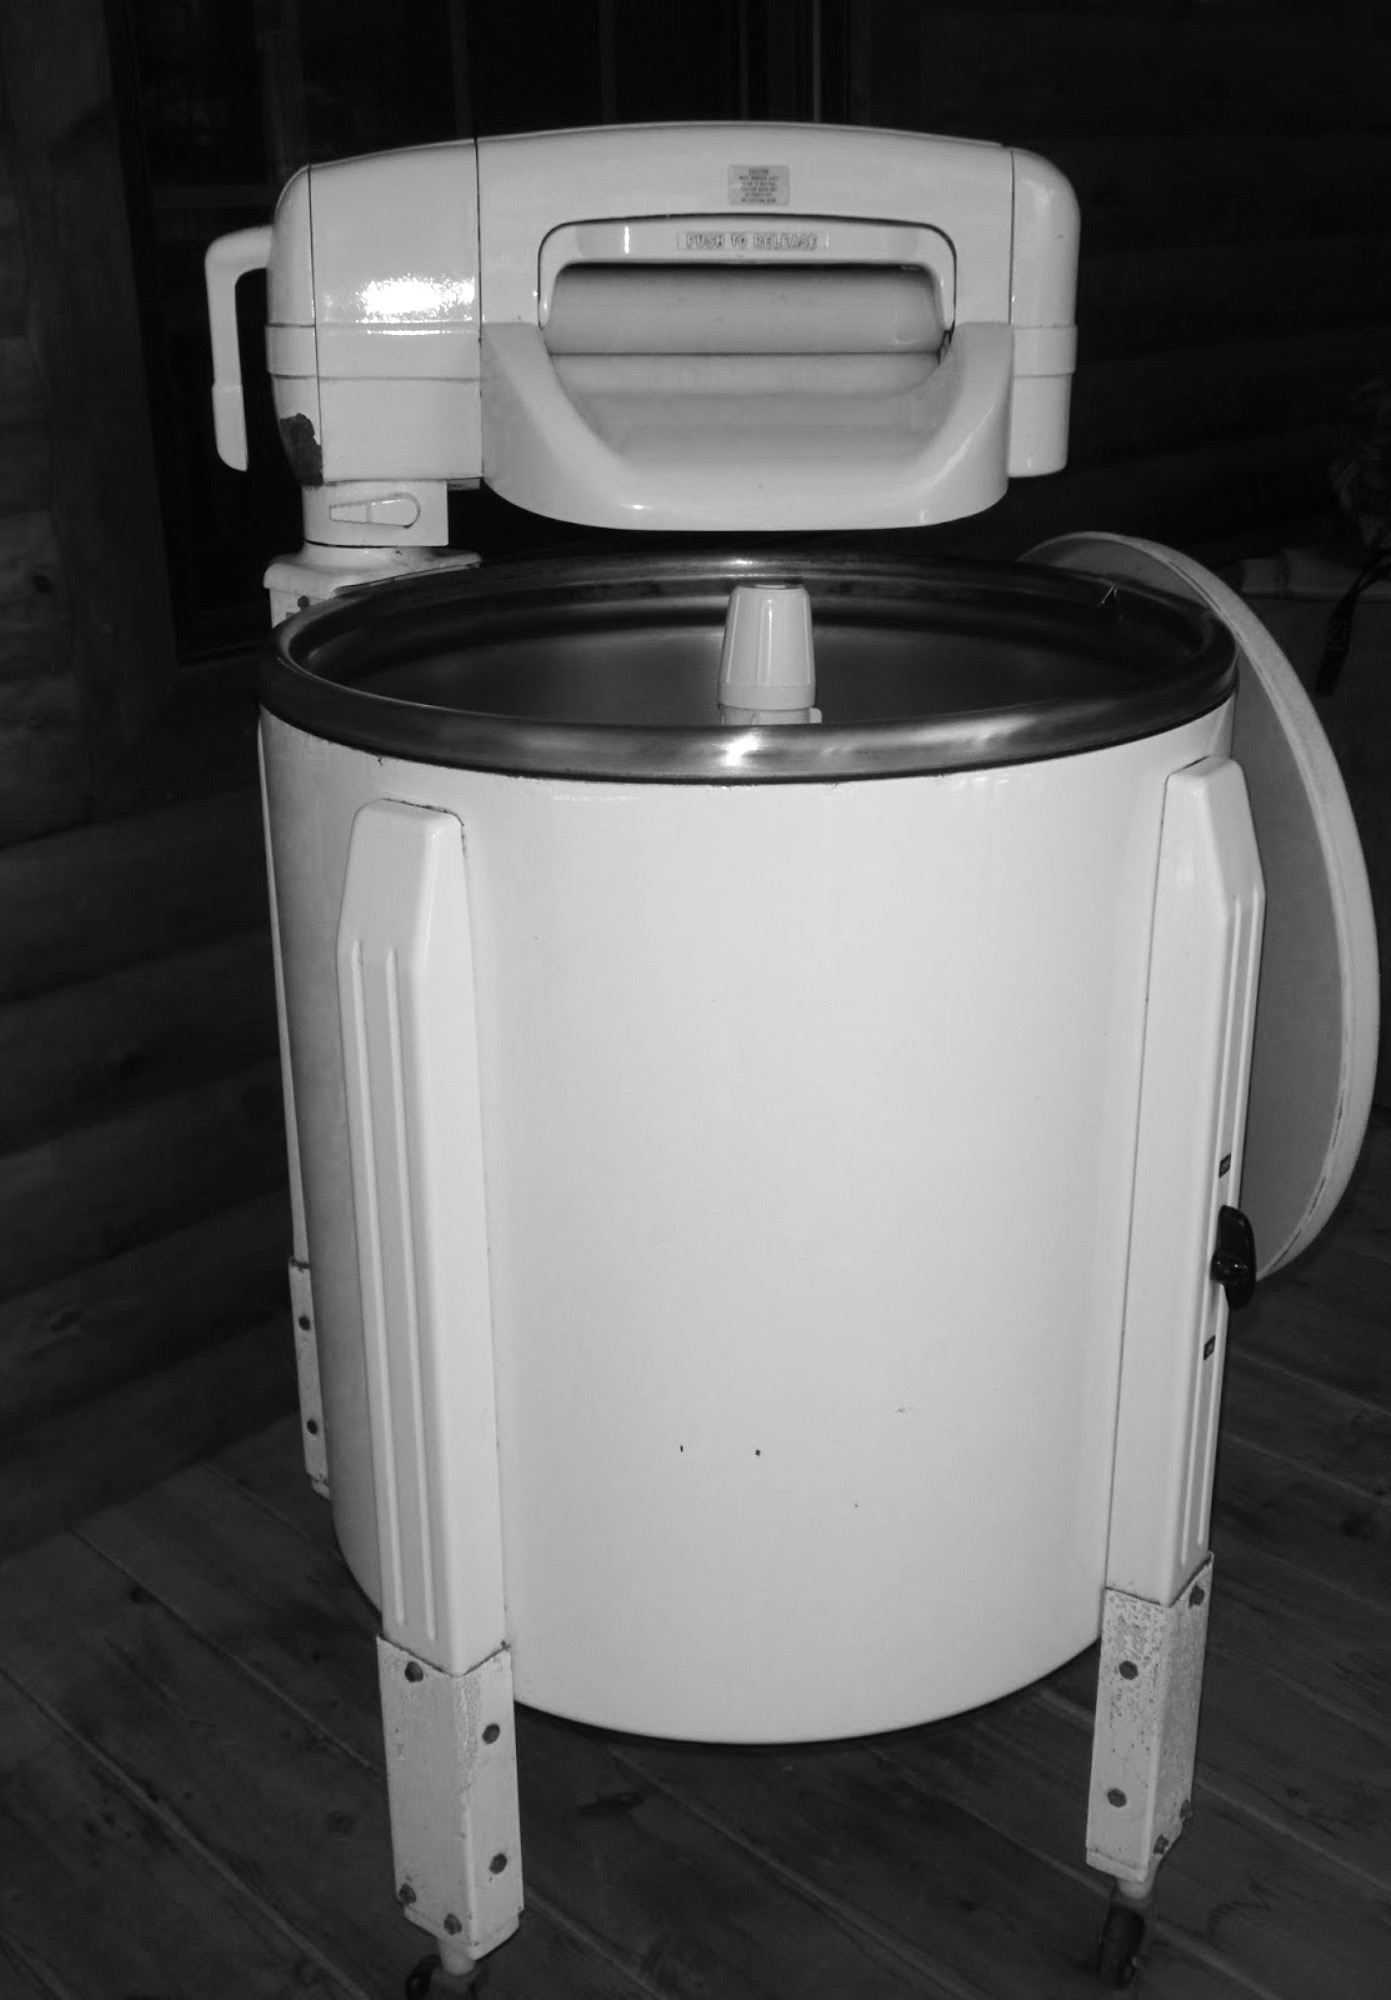 Vintage style washing machines